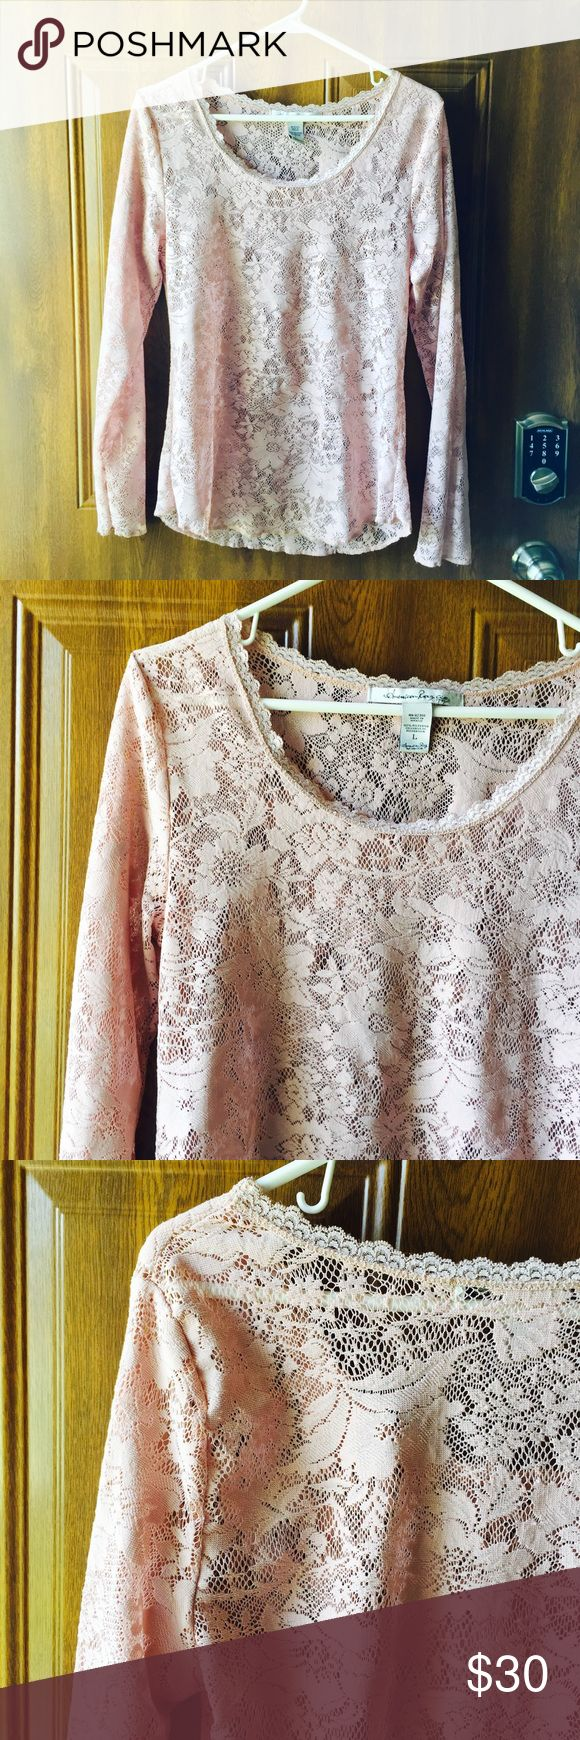 American Rag Lace Too This blouse is long sleeved and a gorgeous dusty rose/pink tone, best captured in last photo. It is lace throughout and would be great with a cream cami underneath and some skinny jeans! Worn only a couple of times. Price is negotiable 🙂 American Rag Tops Blouses